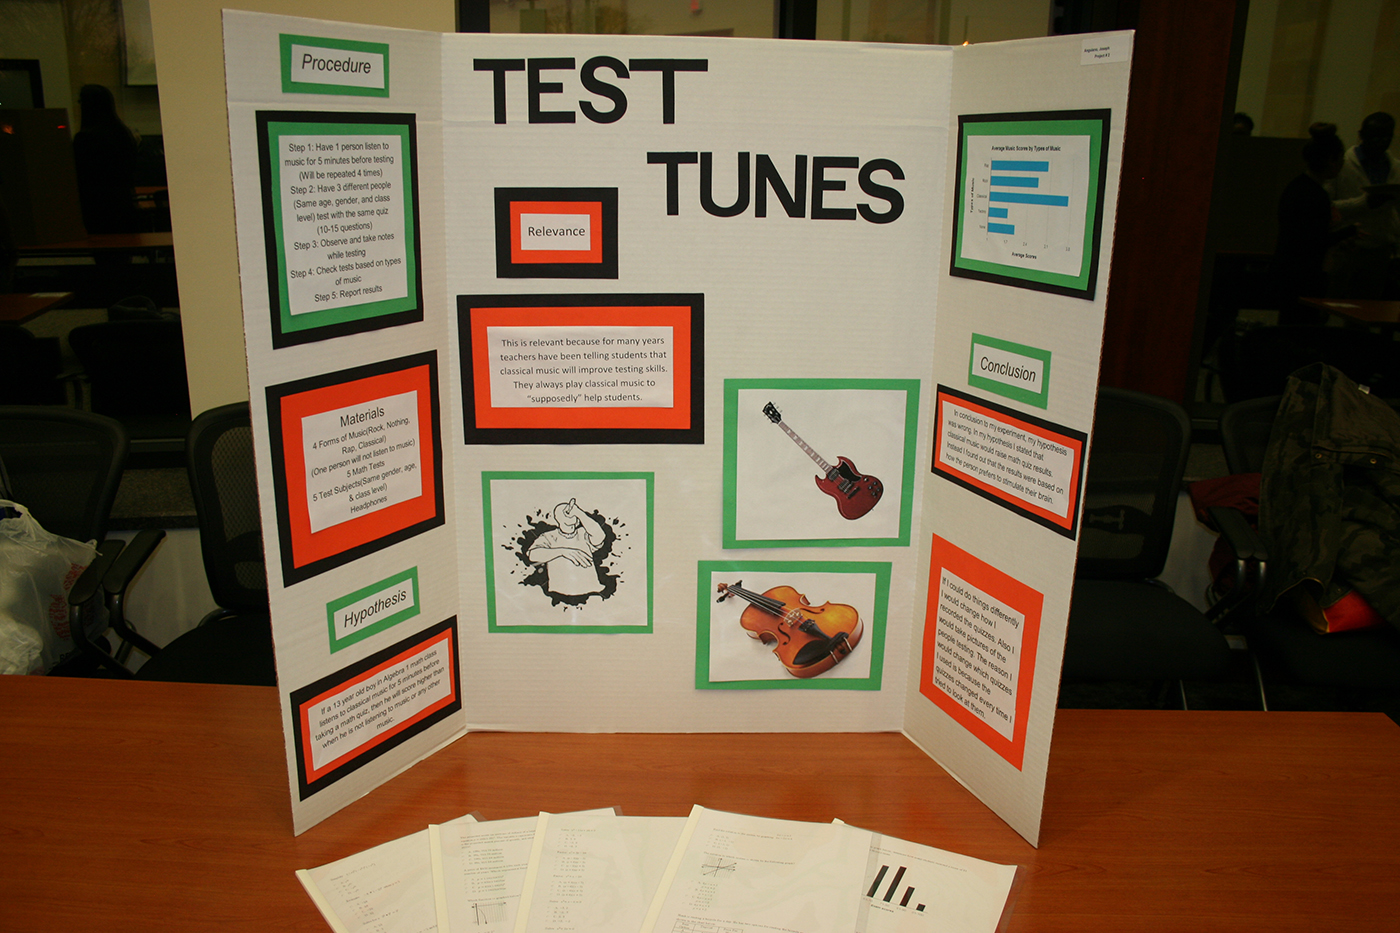 critical thinking science fair projects Step-by-step will take you through the process of helping your students complete a project although the process may seem overwhelming at first, if you just take it step by step, you will find the process easy and enjoyable before you know it, your students will have a high-quality project that you and they can be proud of.